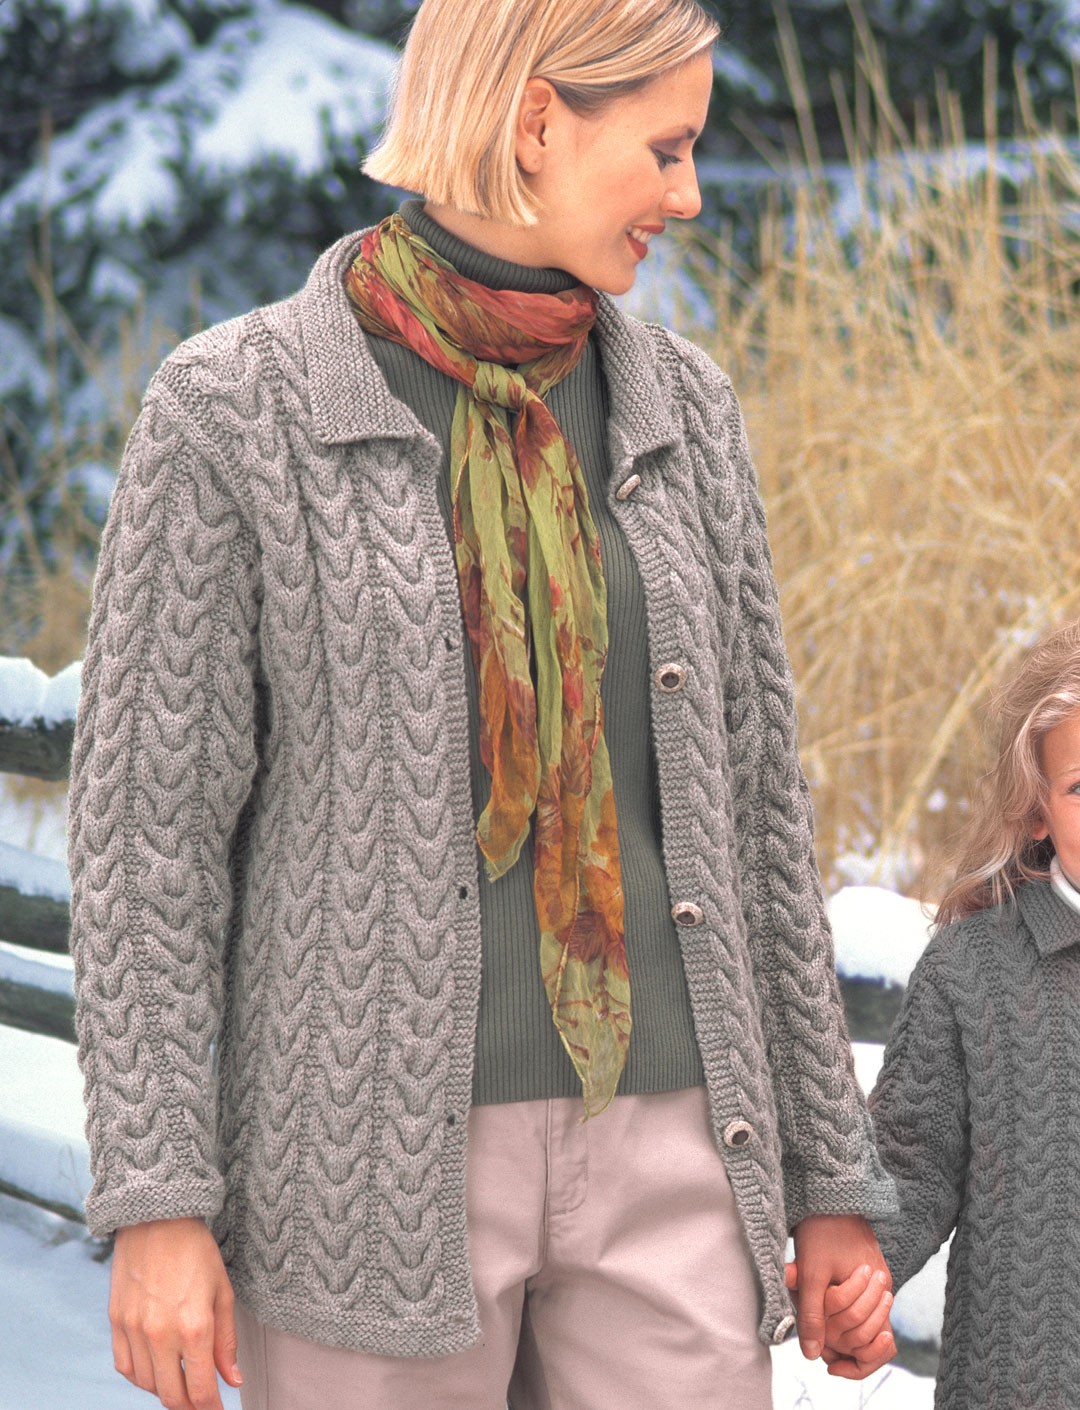 KW - Ladies Cuddly Cables Cardigan (knit) - Patterns ...